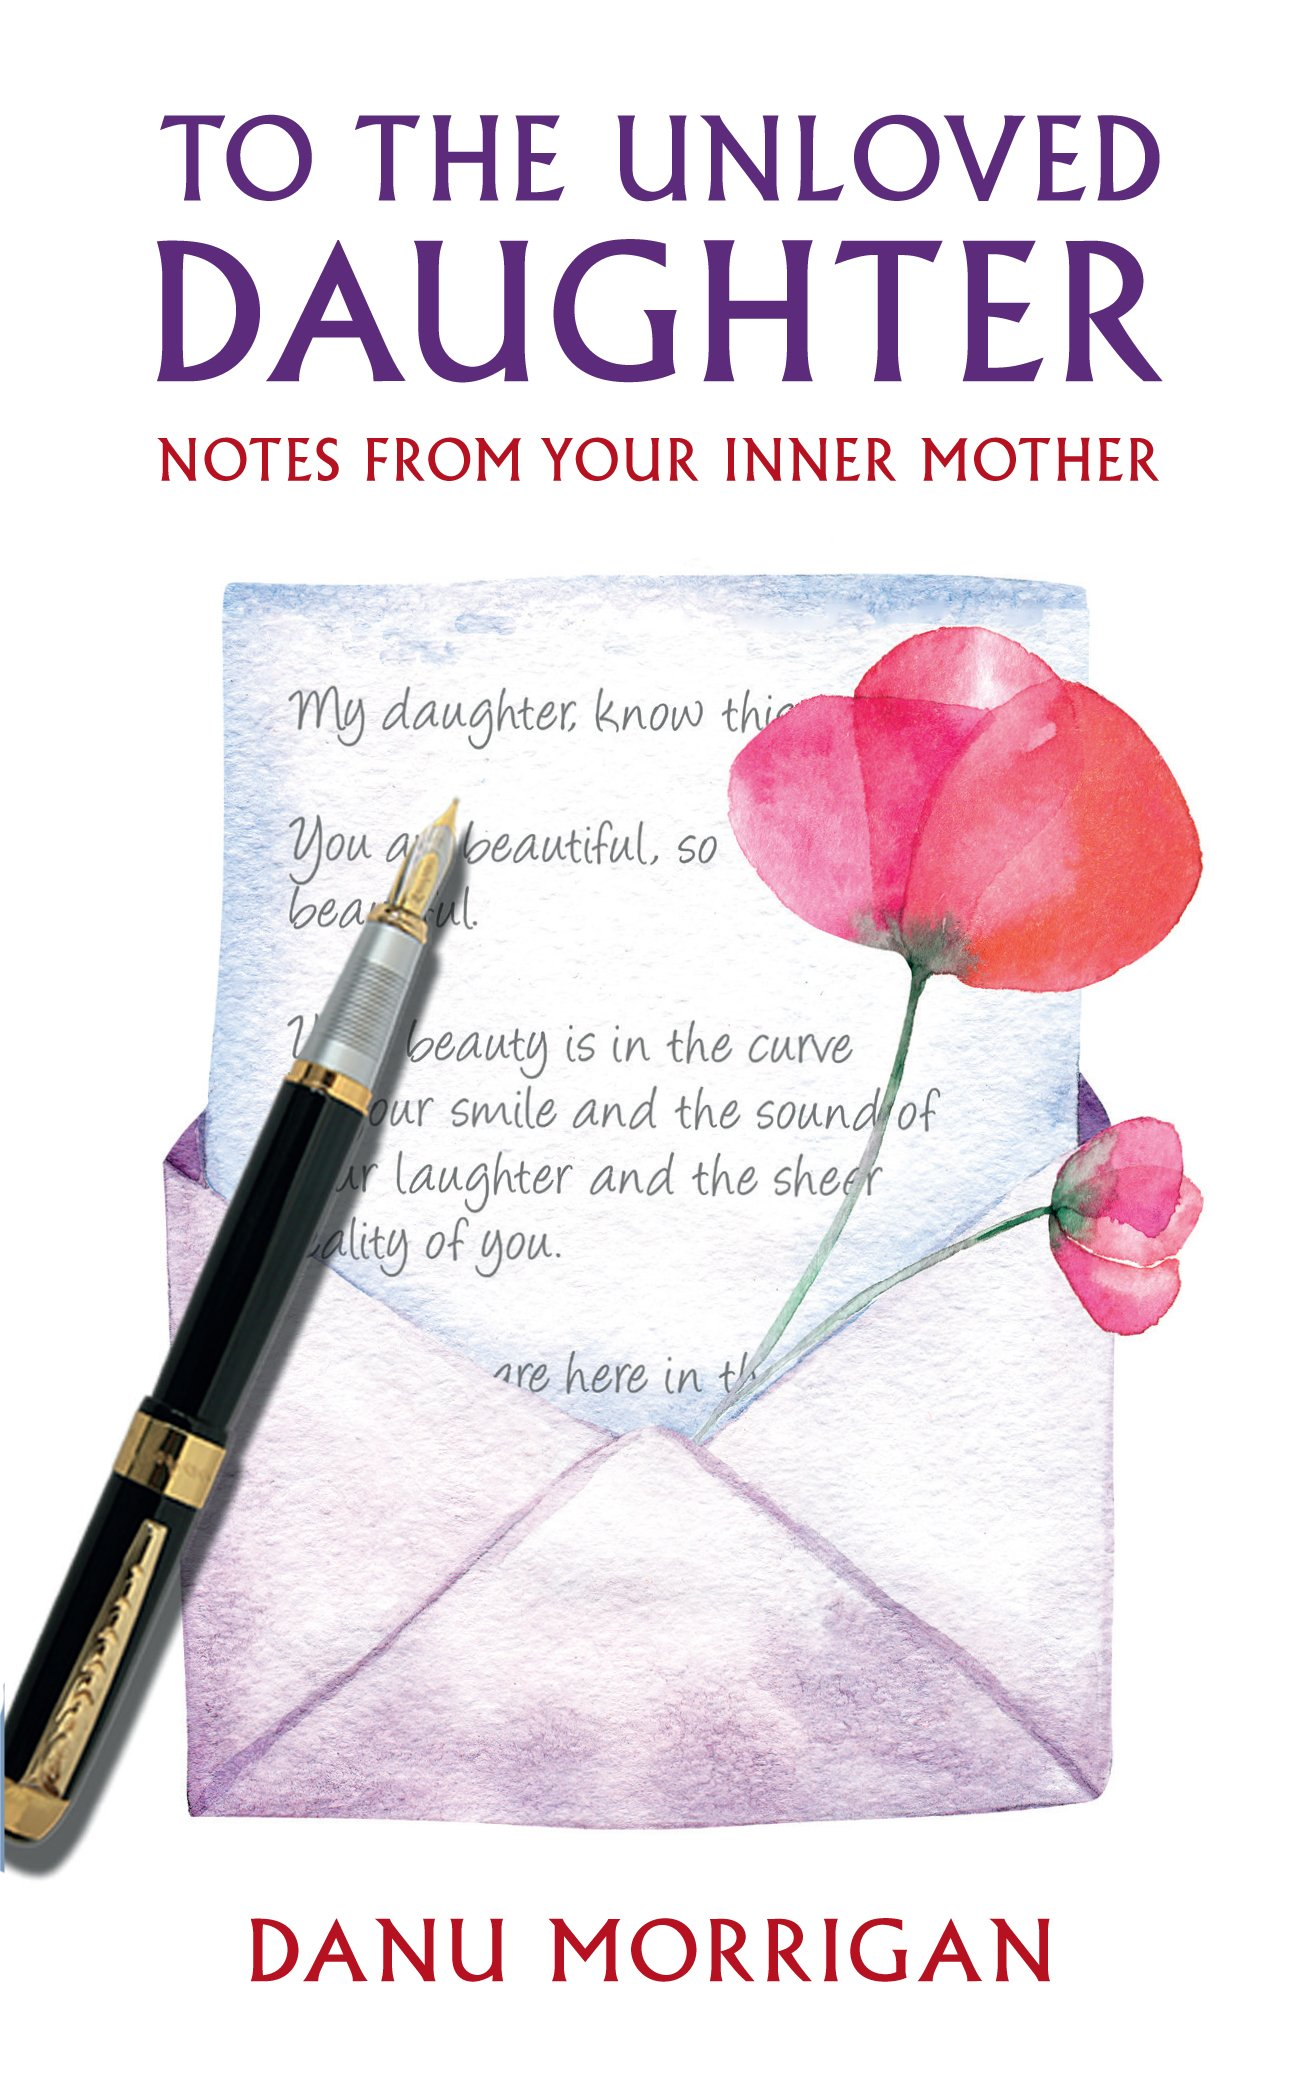 and Tools to Heal The Daughter Detox Companion Workbook A Year of Guided Journaling Inspiration